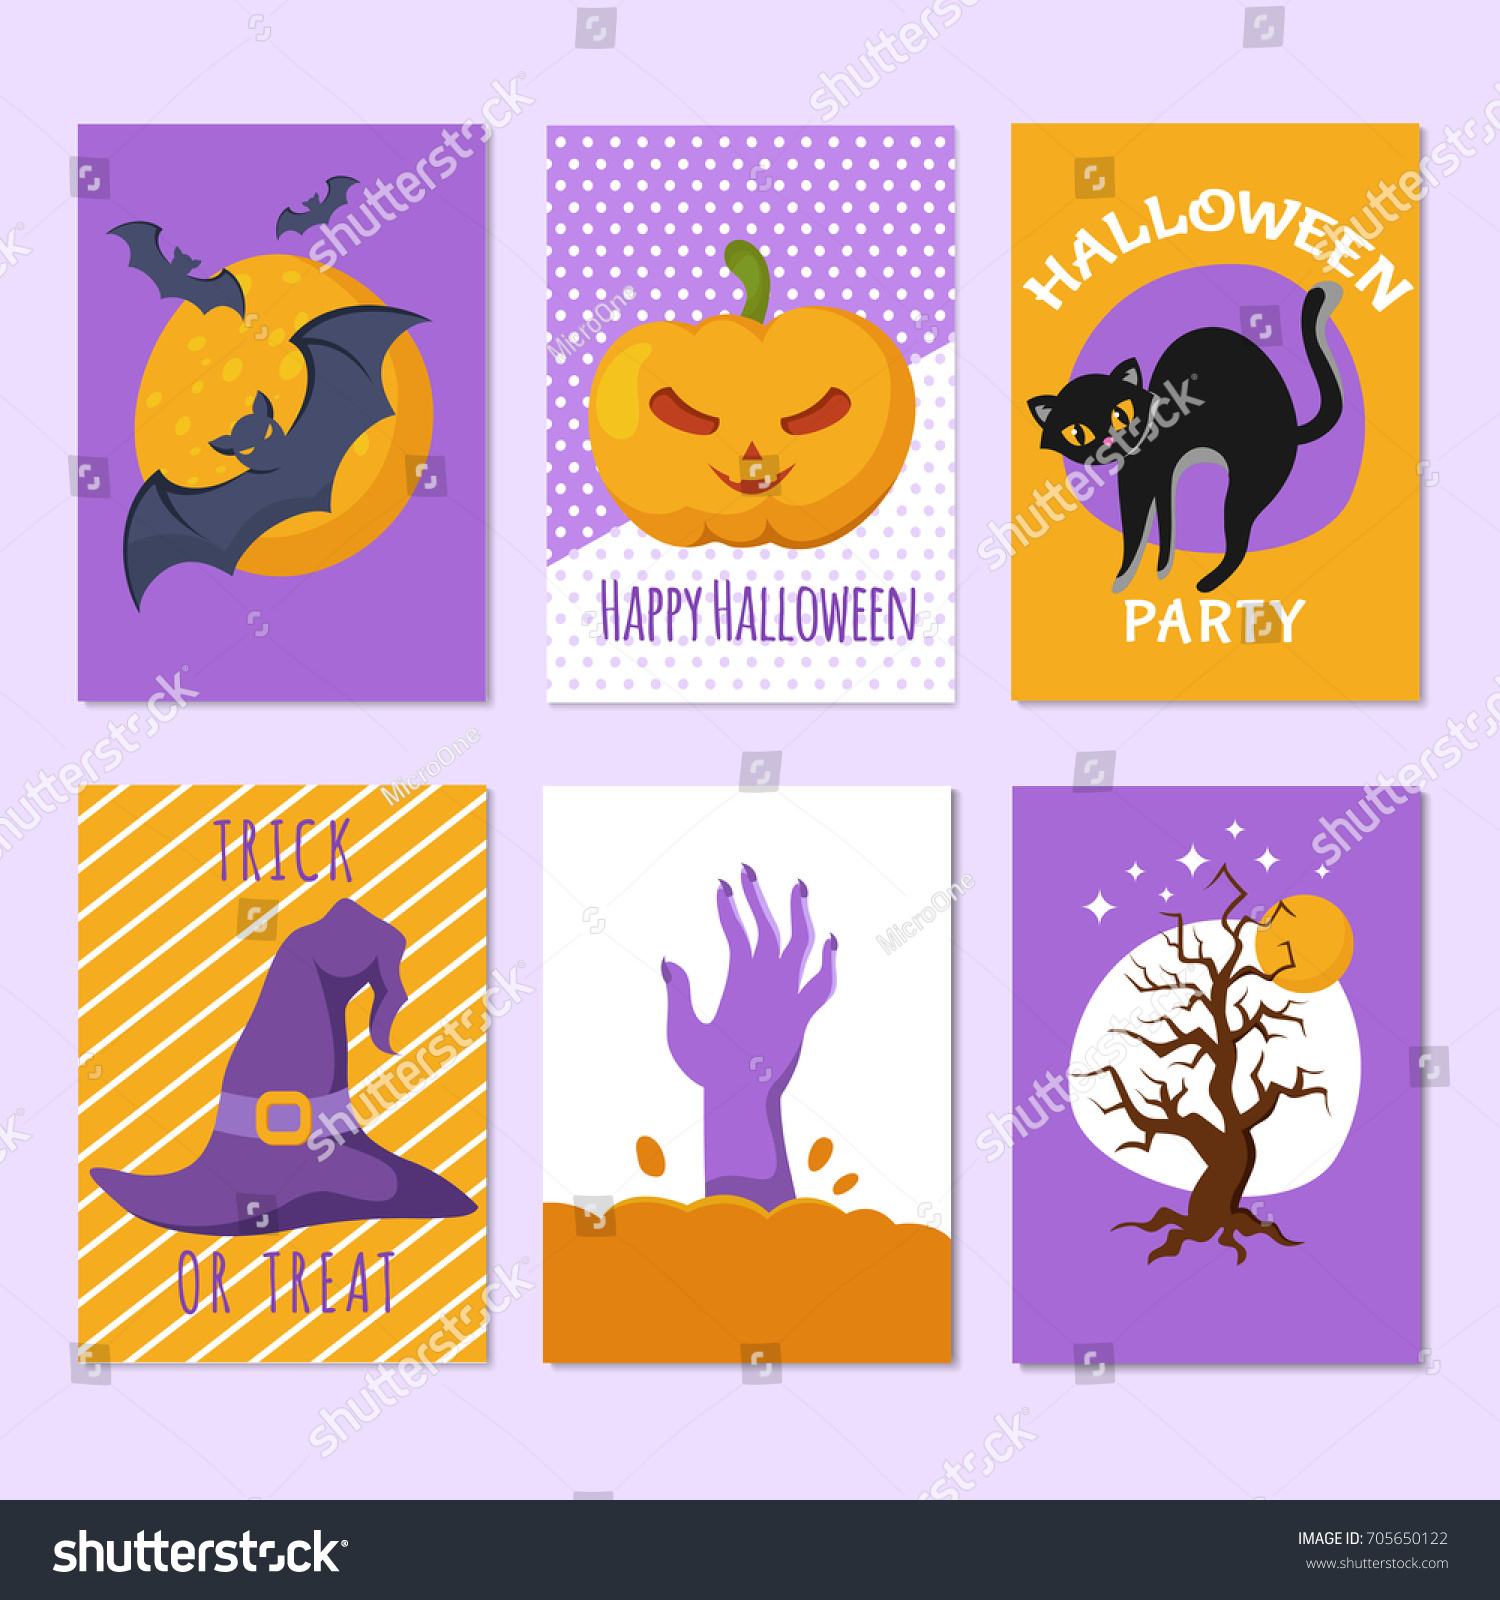 Halloween party posters invitation cards cartoon stock vector halloween party posters and invitation cards with cartoon scary signs and characters horror backgrounds vector stopboris Image collections